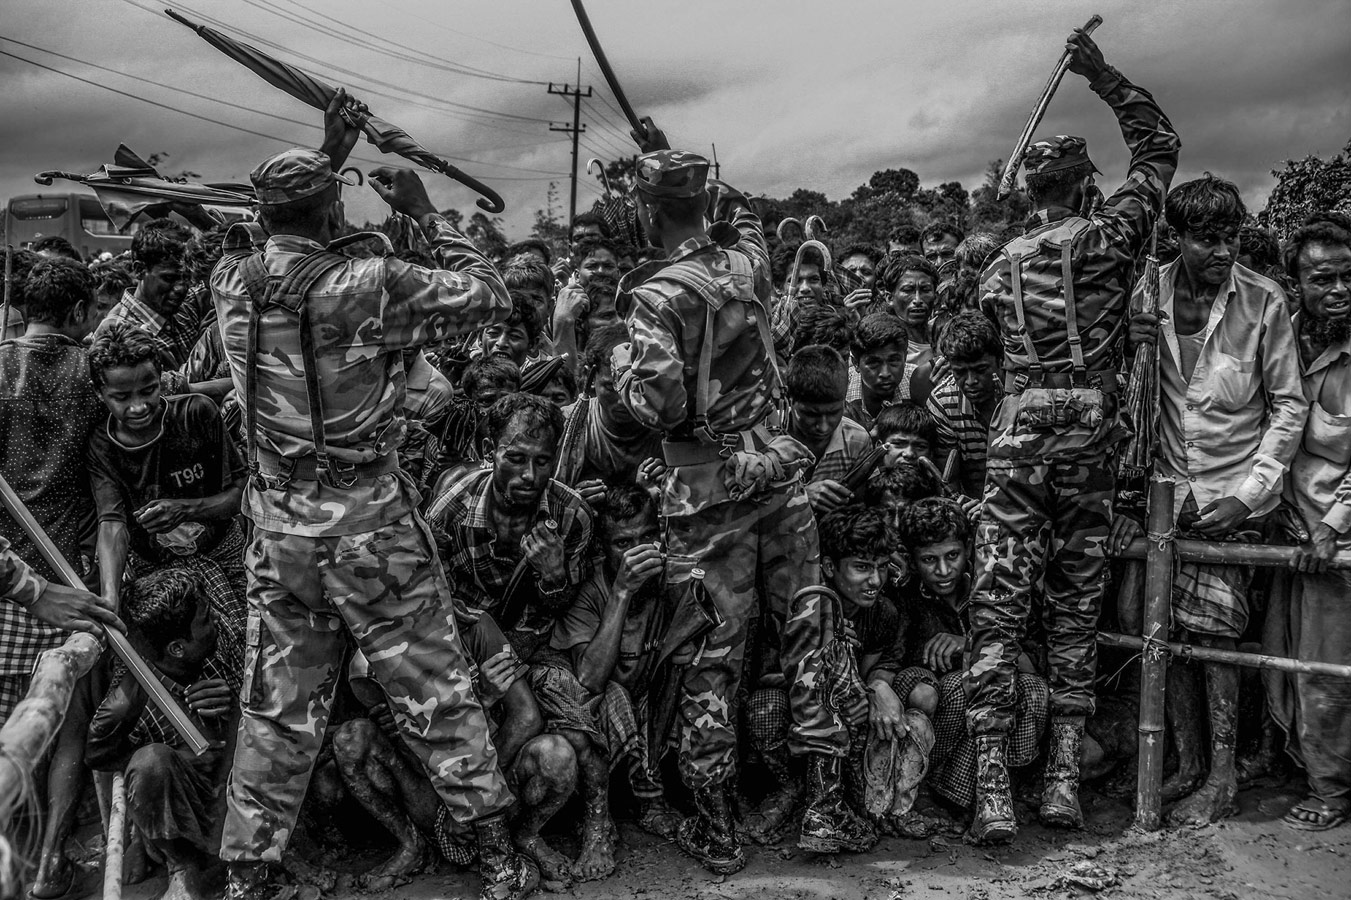 Life Inside the Refugee Camp, © Mohd Samsul Mohd Said, 1st Place, Current Affairs & News : Professional, Sony World Photography Awards